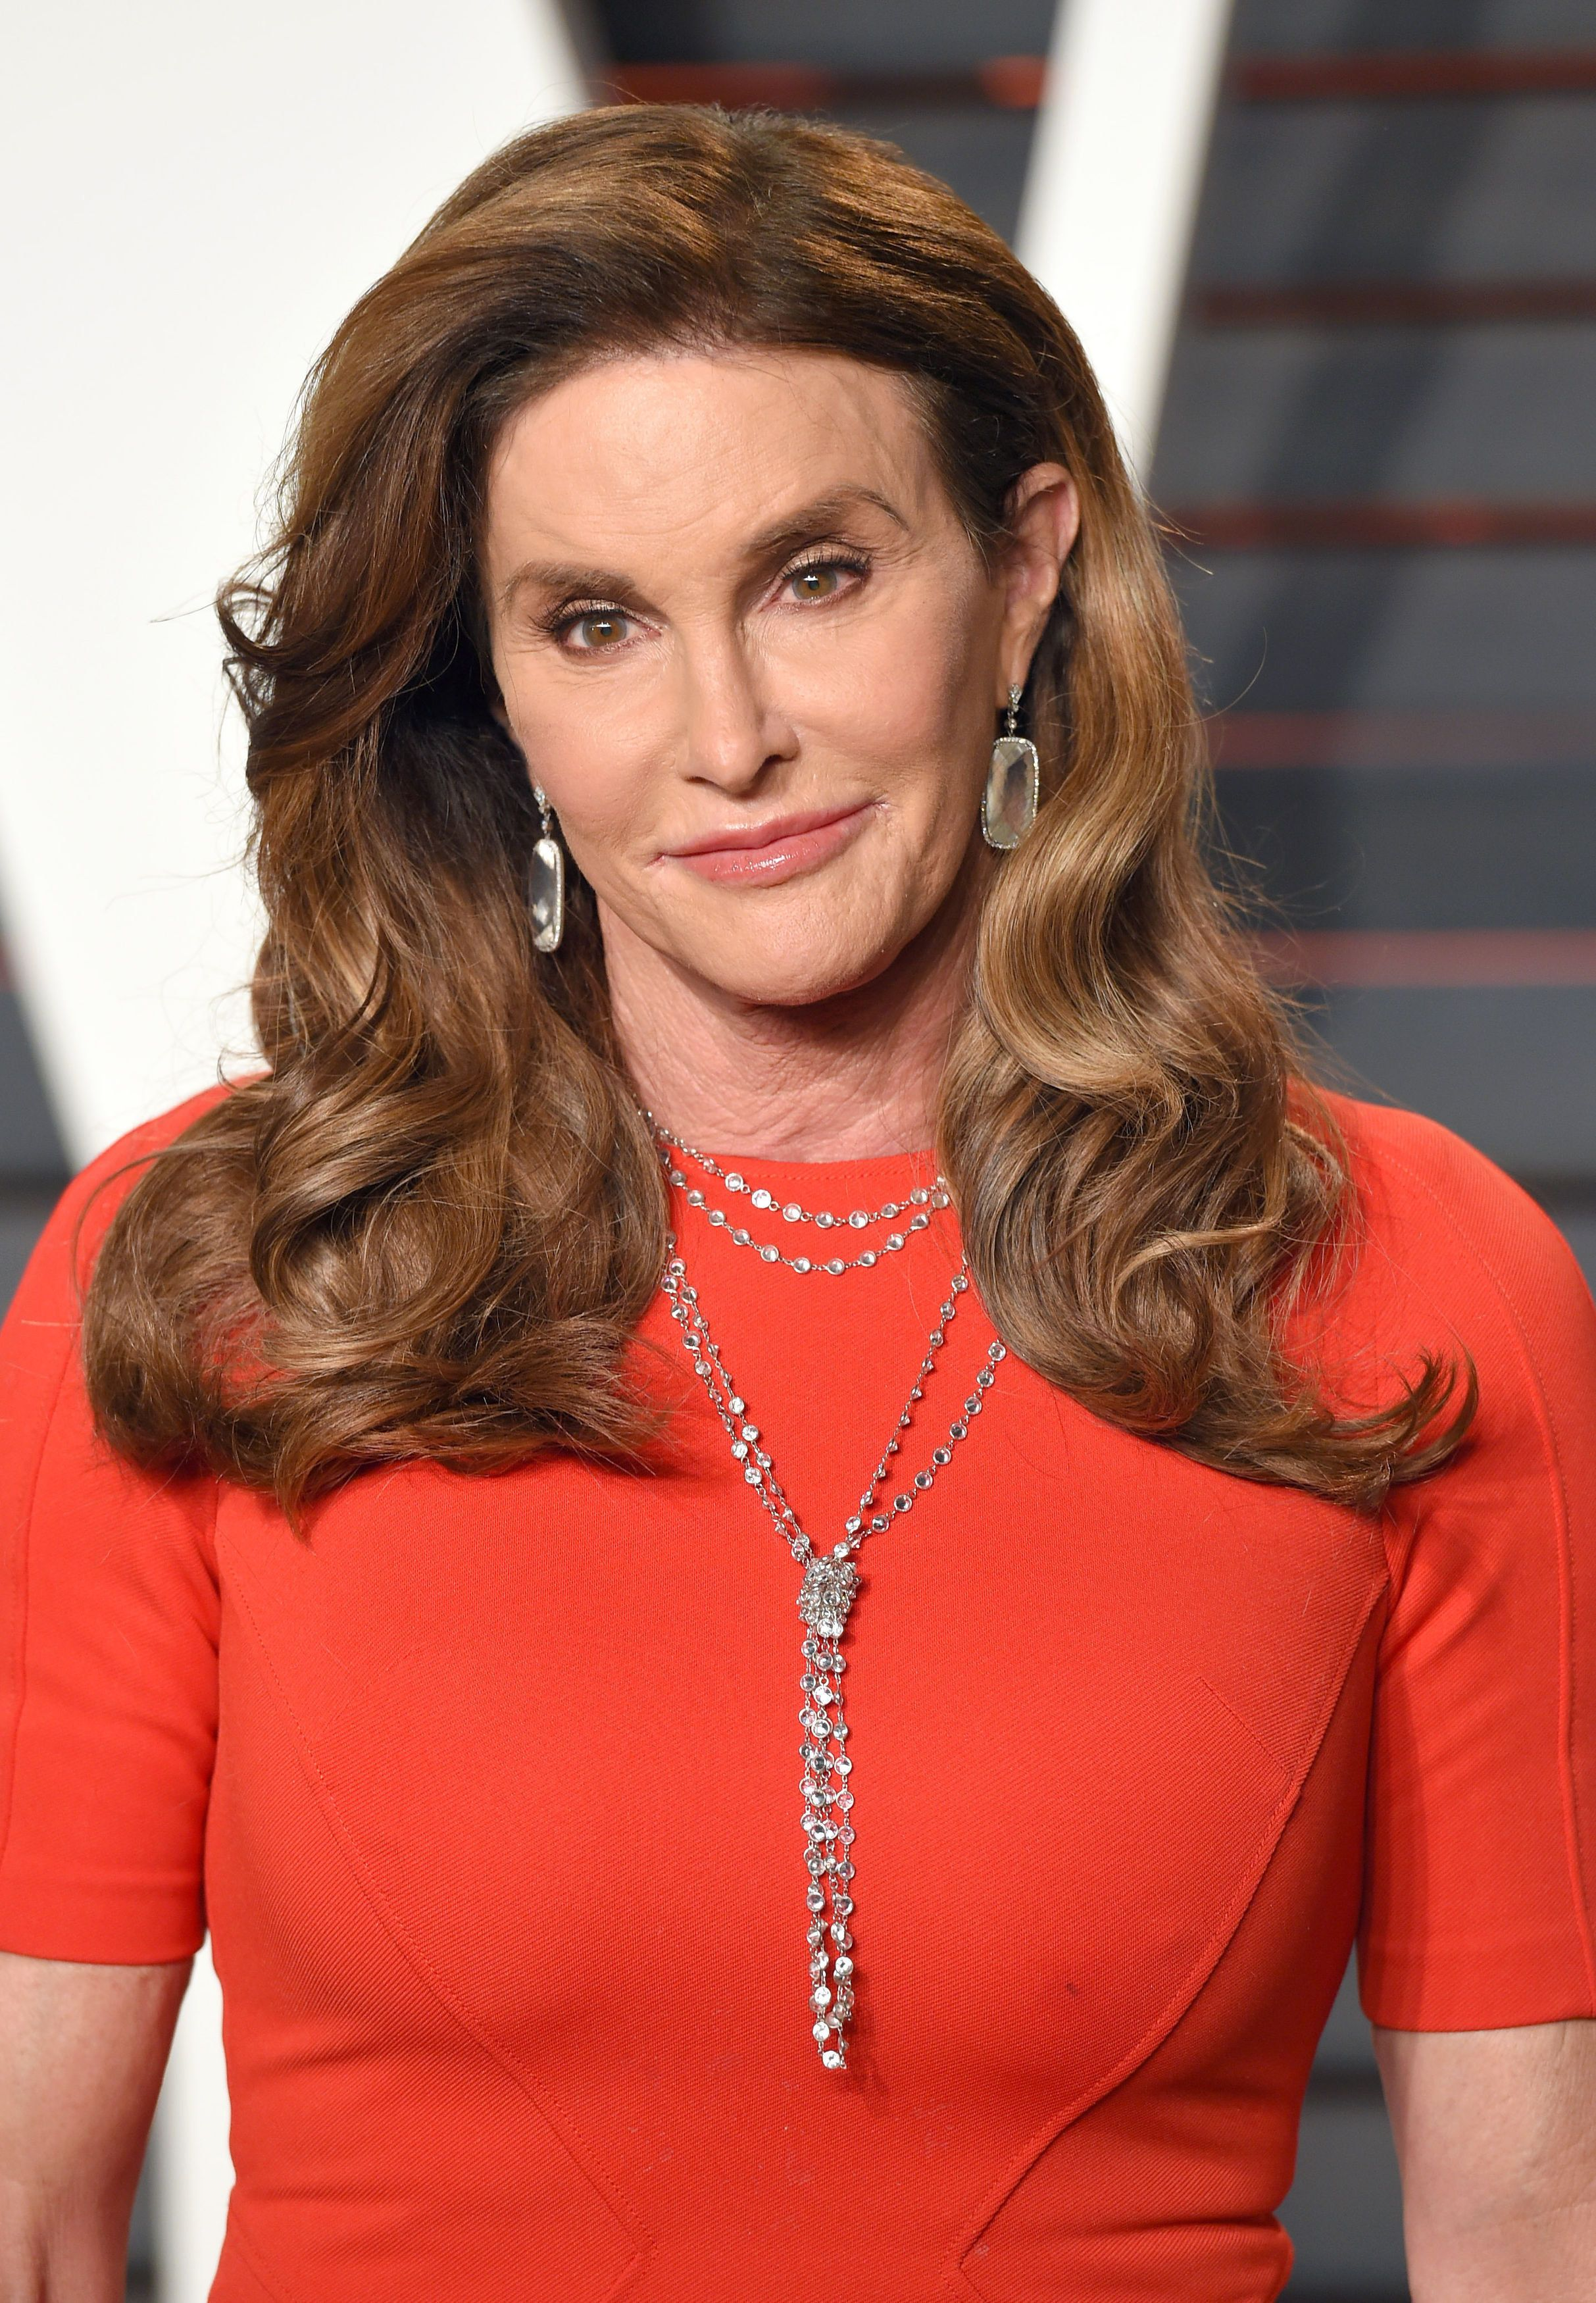 Caitlyn Jenner Confirmed To Attend The 2017 British LGBT